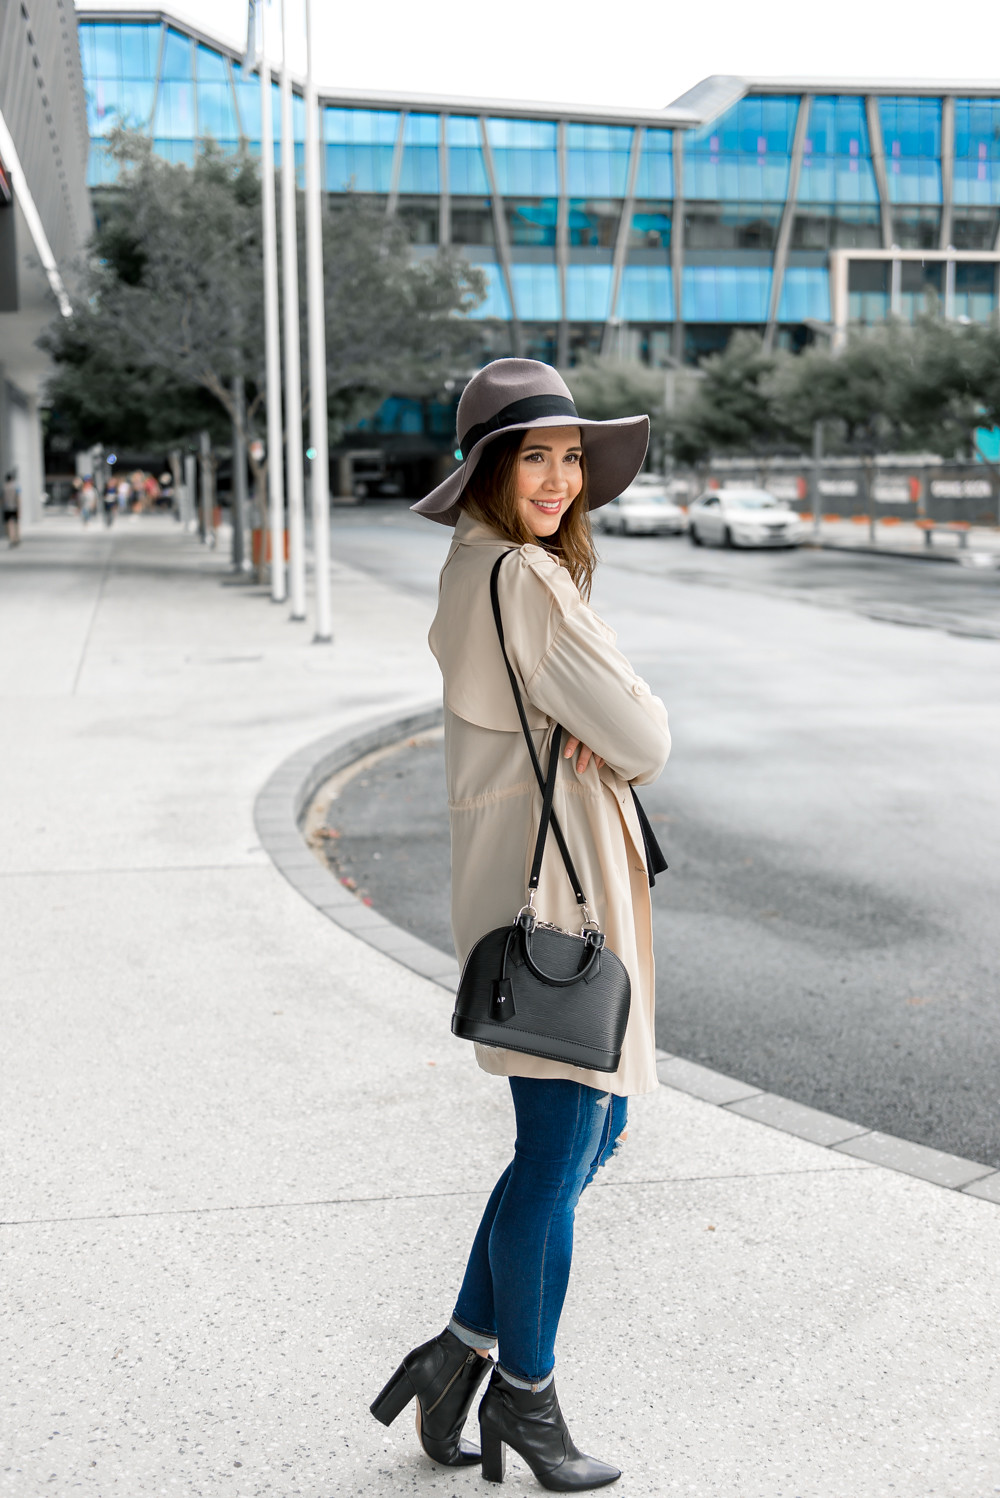 Stylish winter outfit with black booties